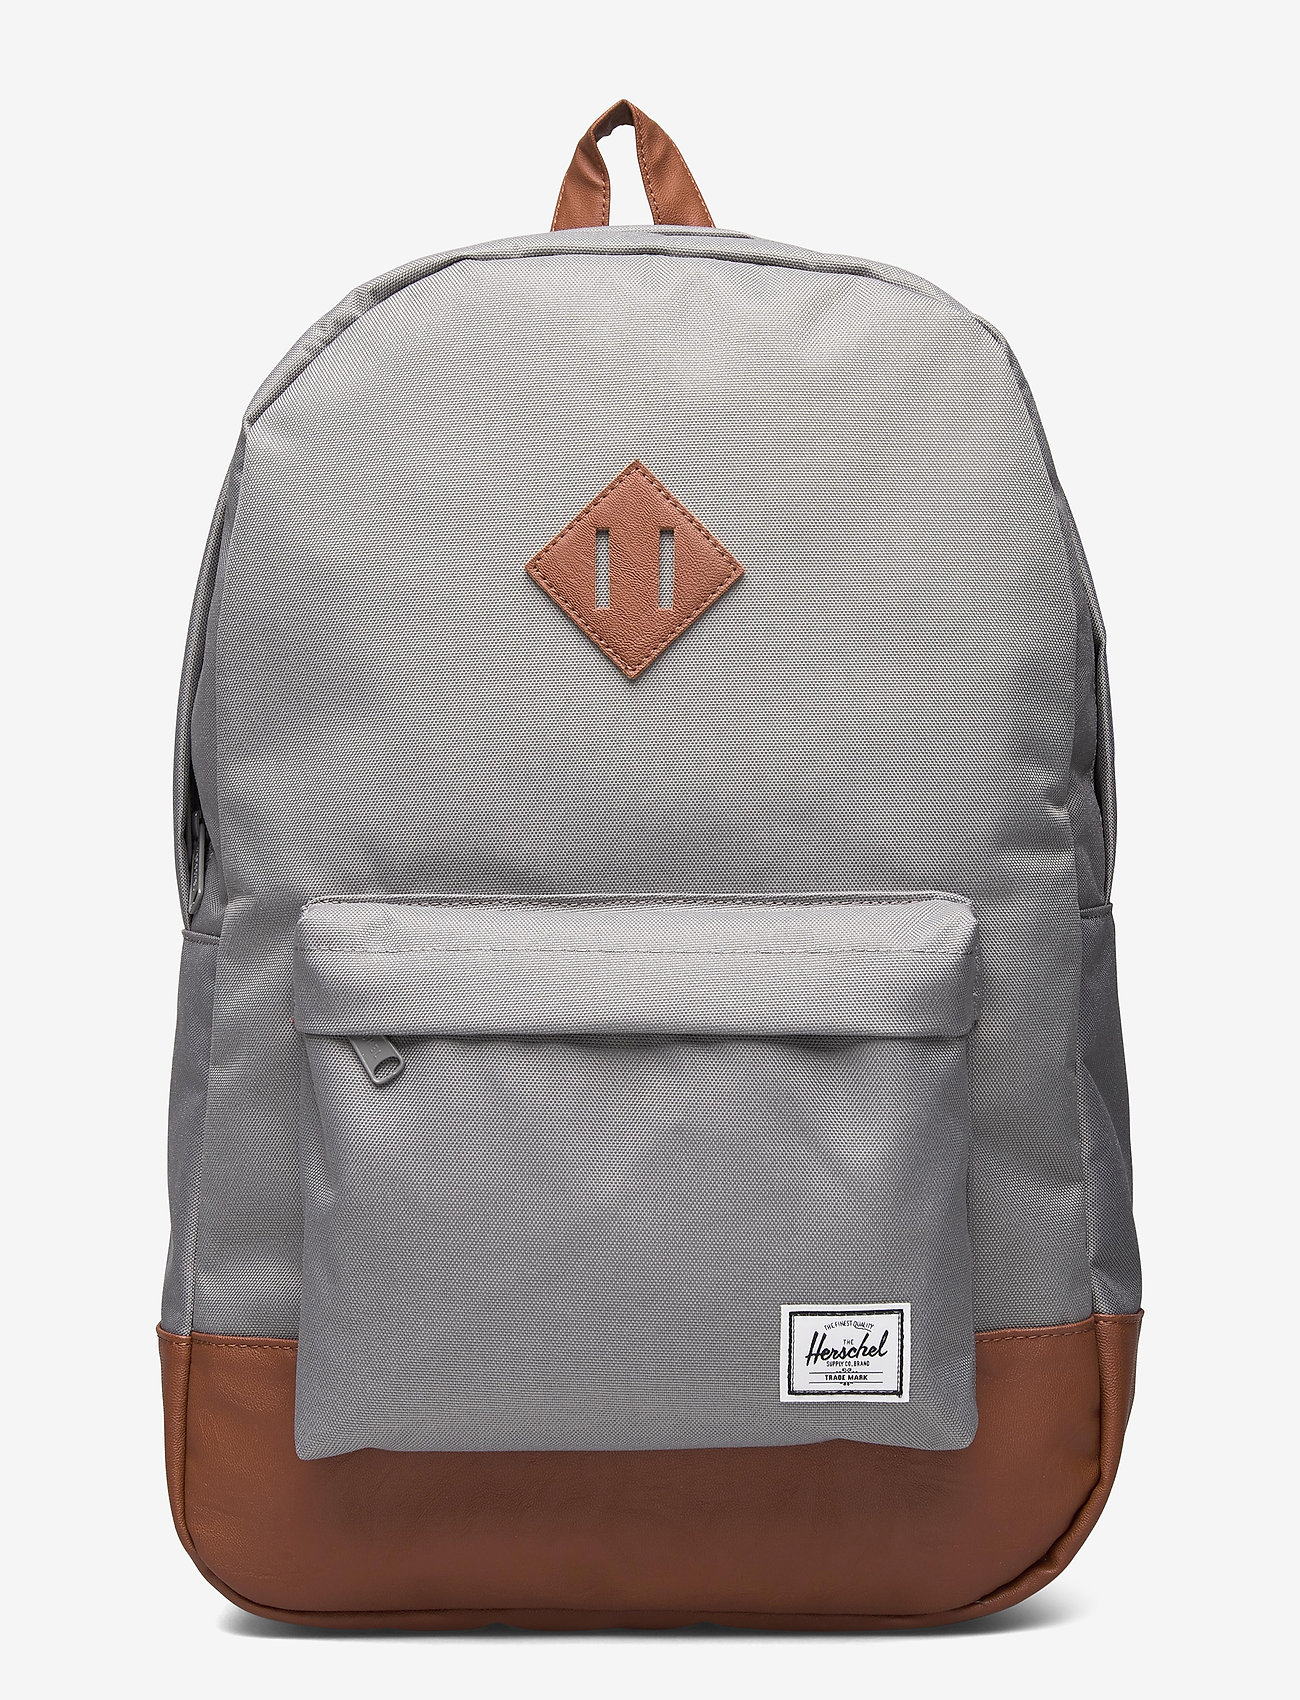 Herschel - Heritage - Grey - backpacks - grey - 0